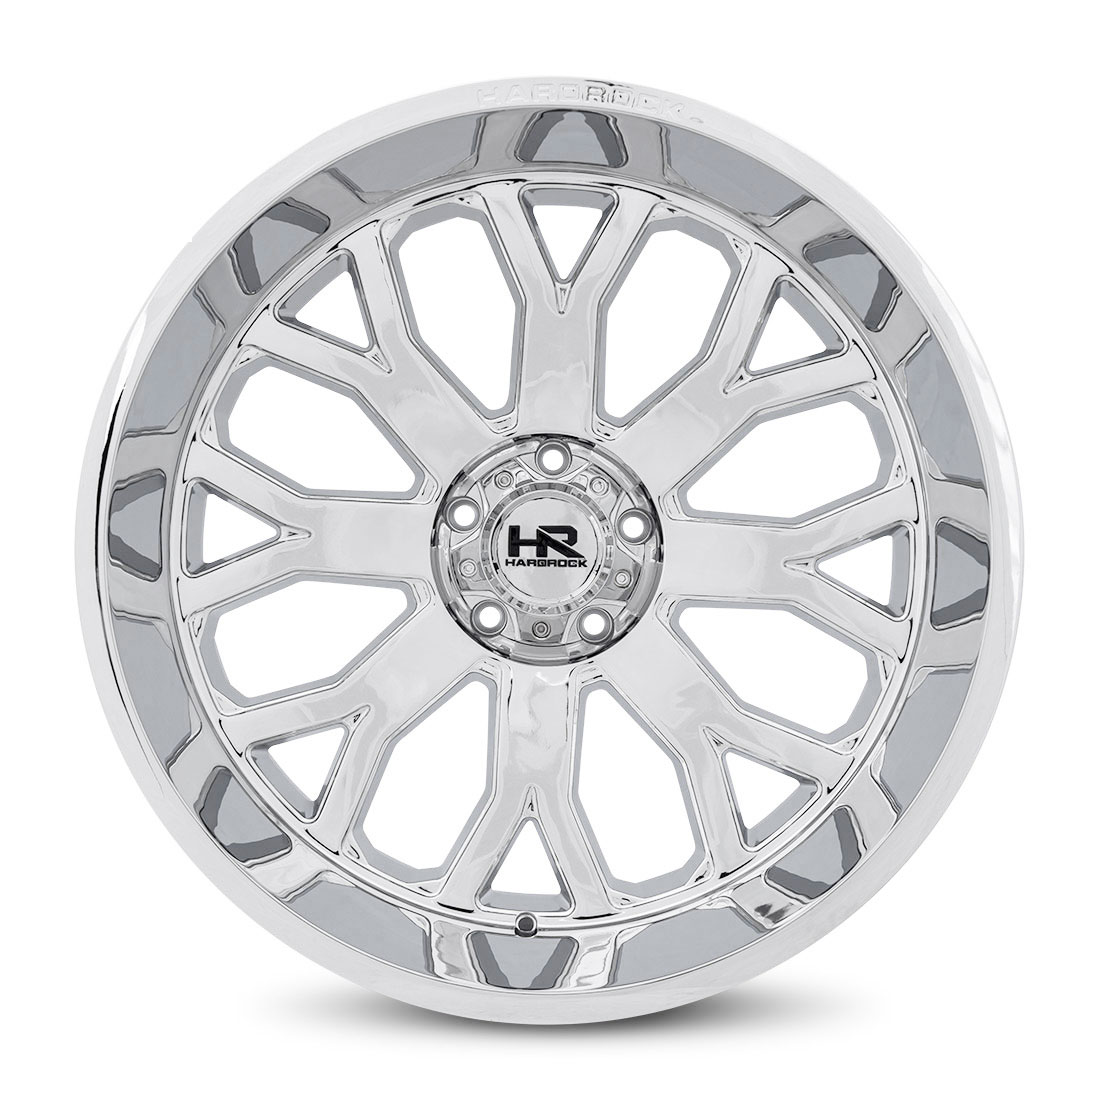 Hardrock Offroad Wheels H504 Slammer-Xposed - Chrome - 24x12